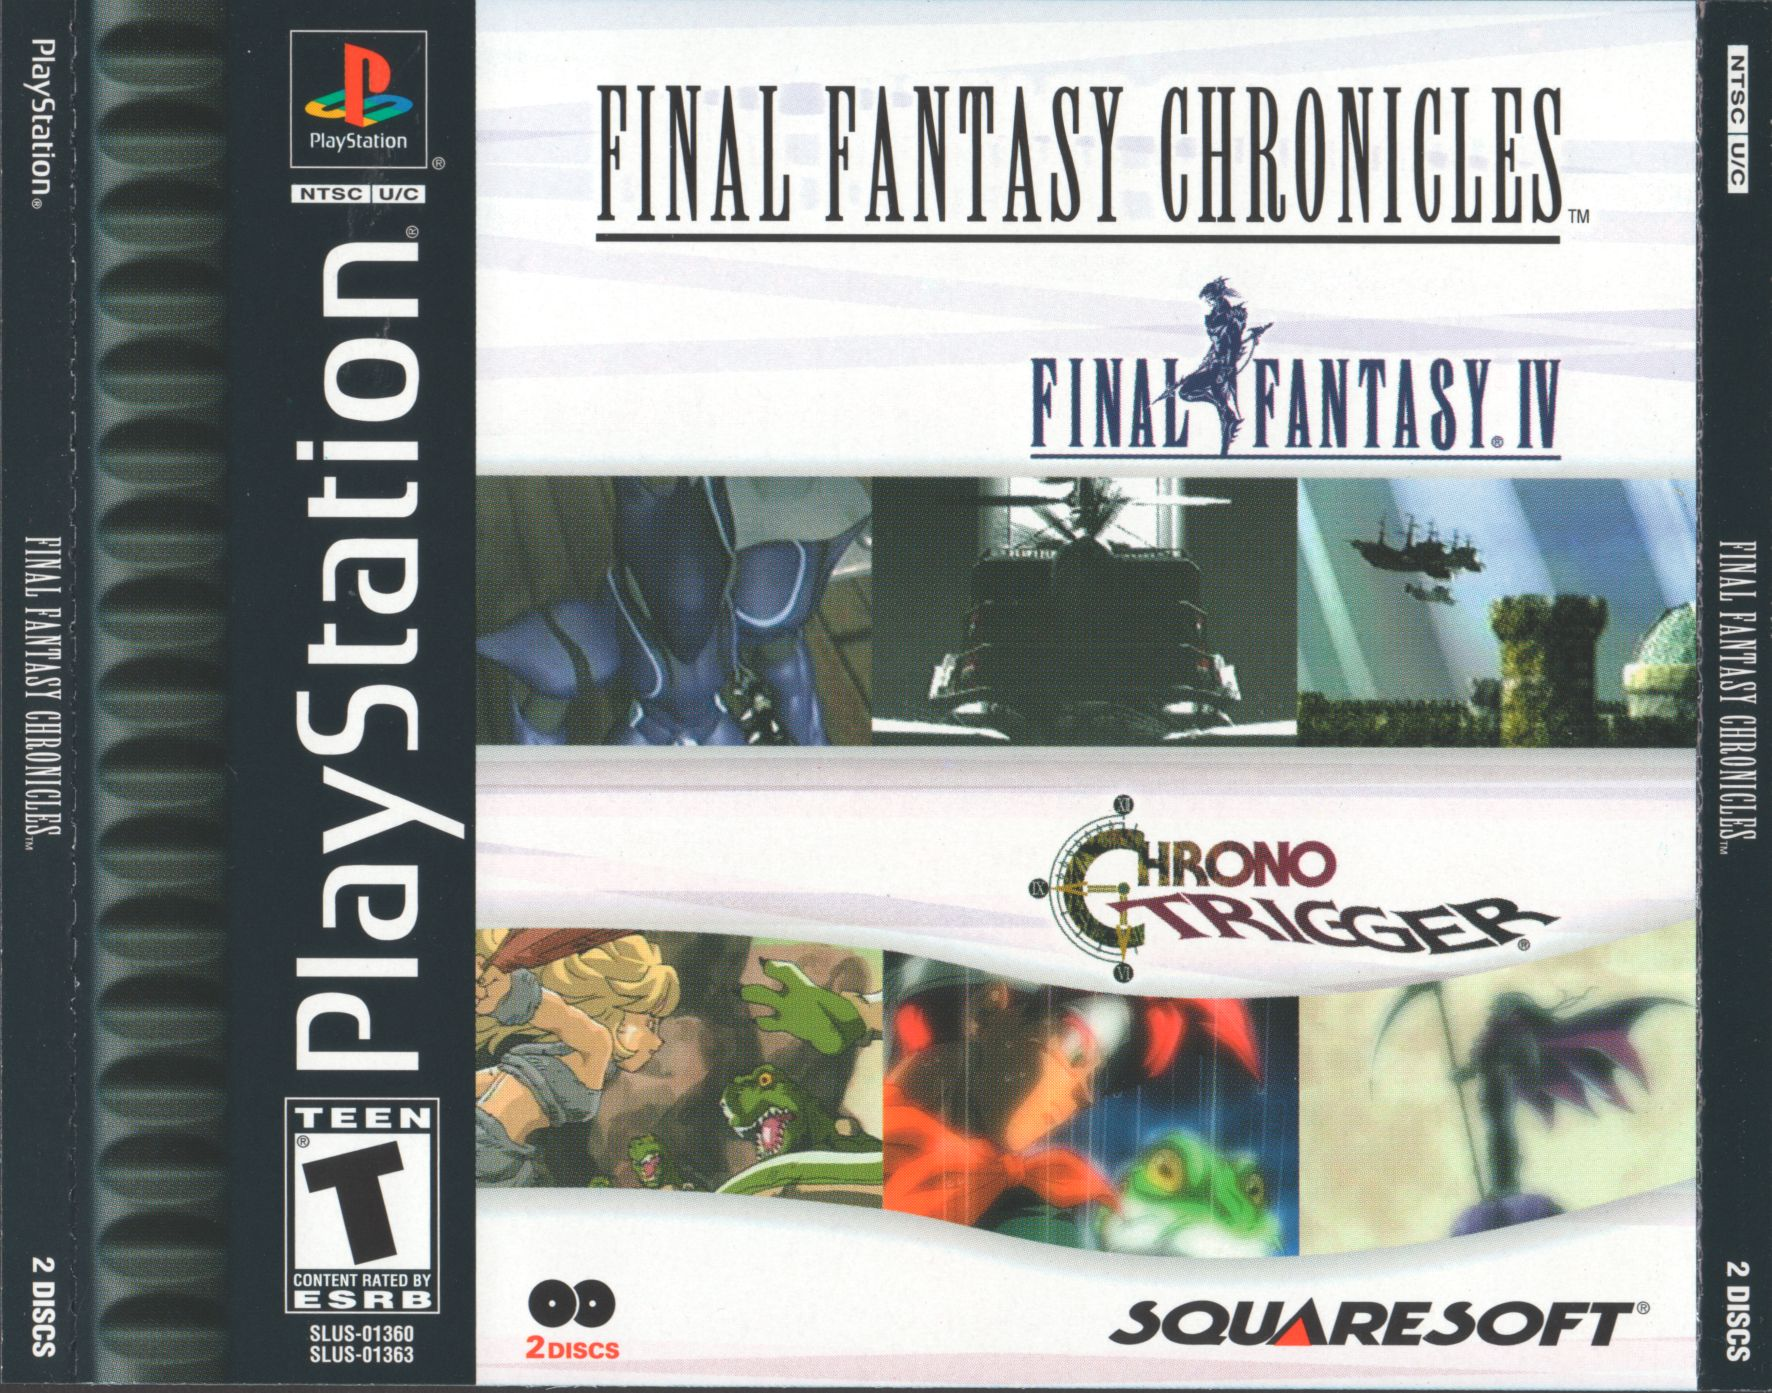 Final Fantasy Chronicles - Chrono Trigger [SLUS-01363]